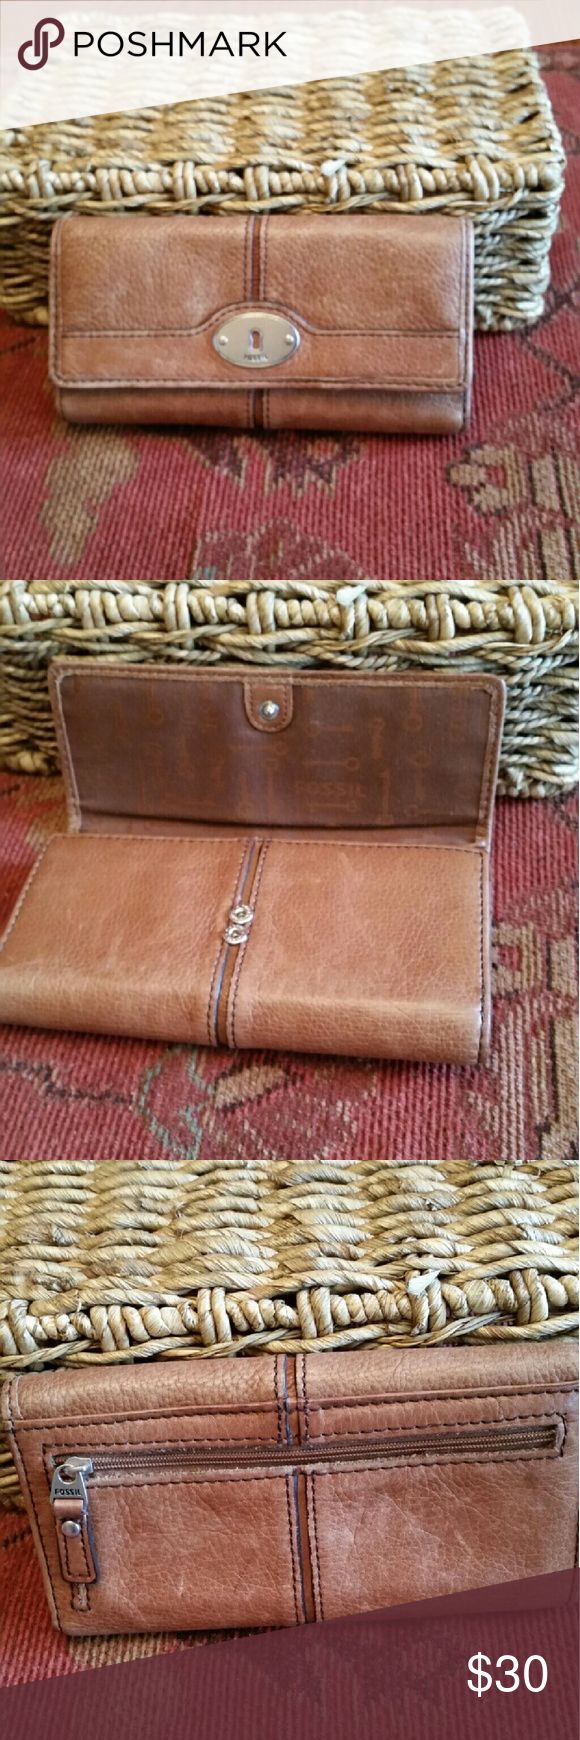 Womens Fossil Brown Leather Wallet Soft light brown leather wallet in VGC Fossil Bags Wallets large leather wallet similar to this